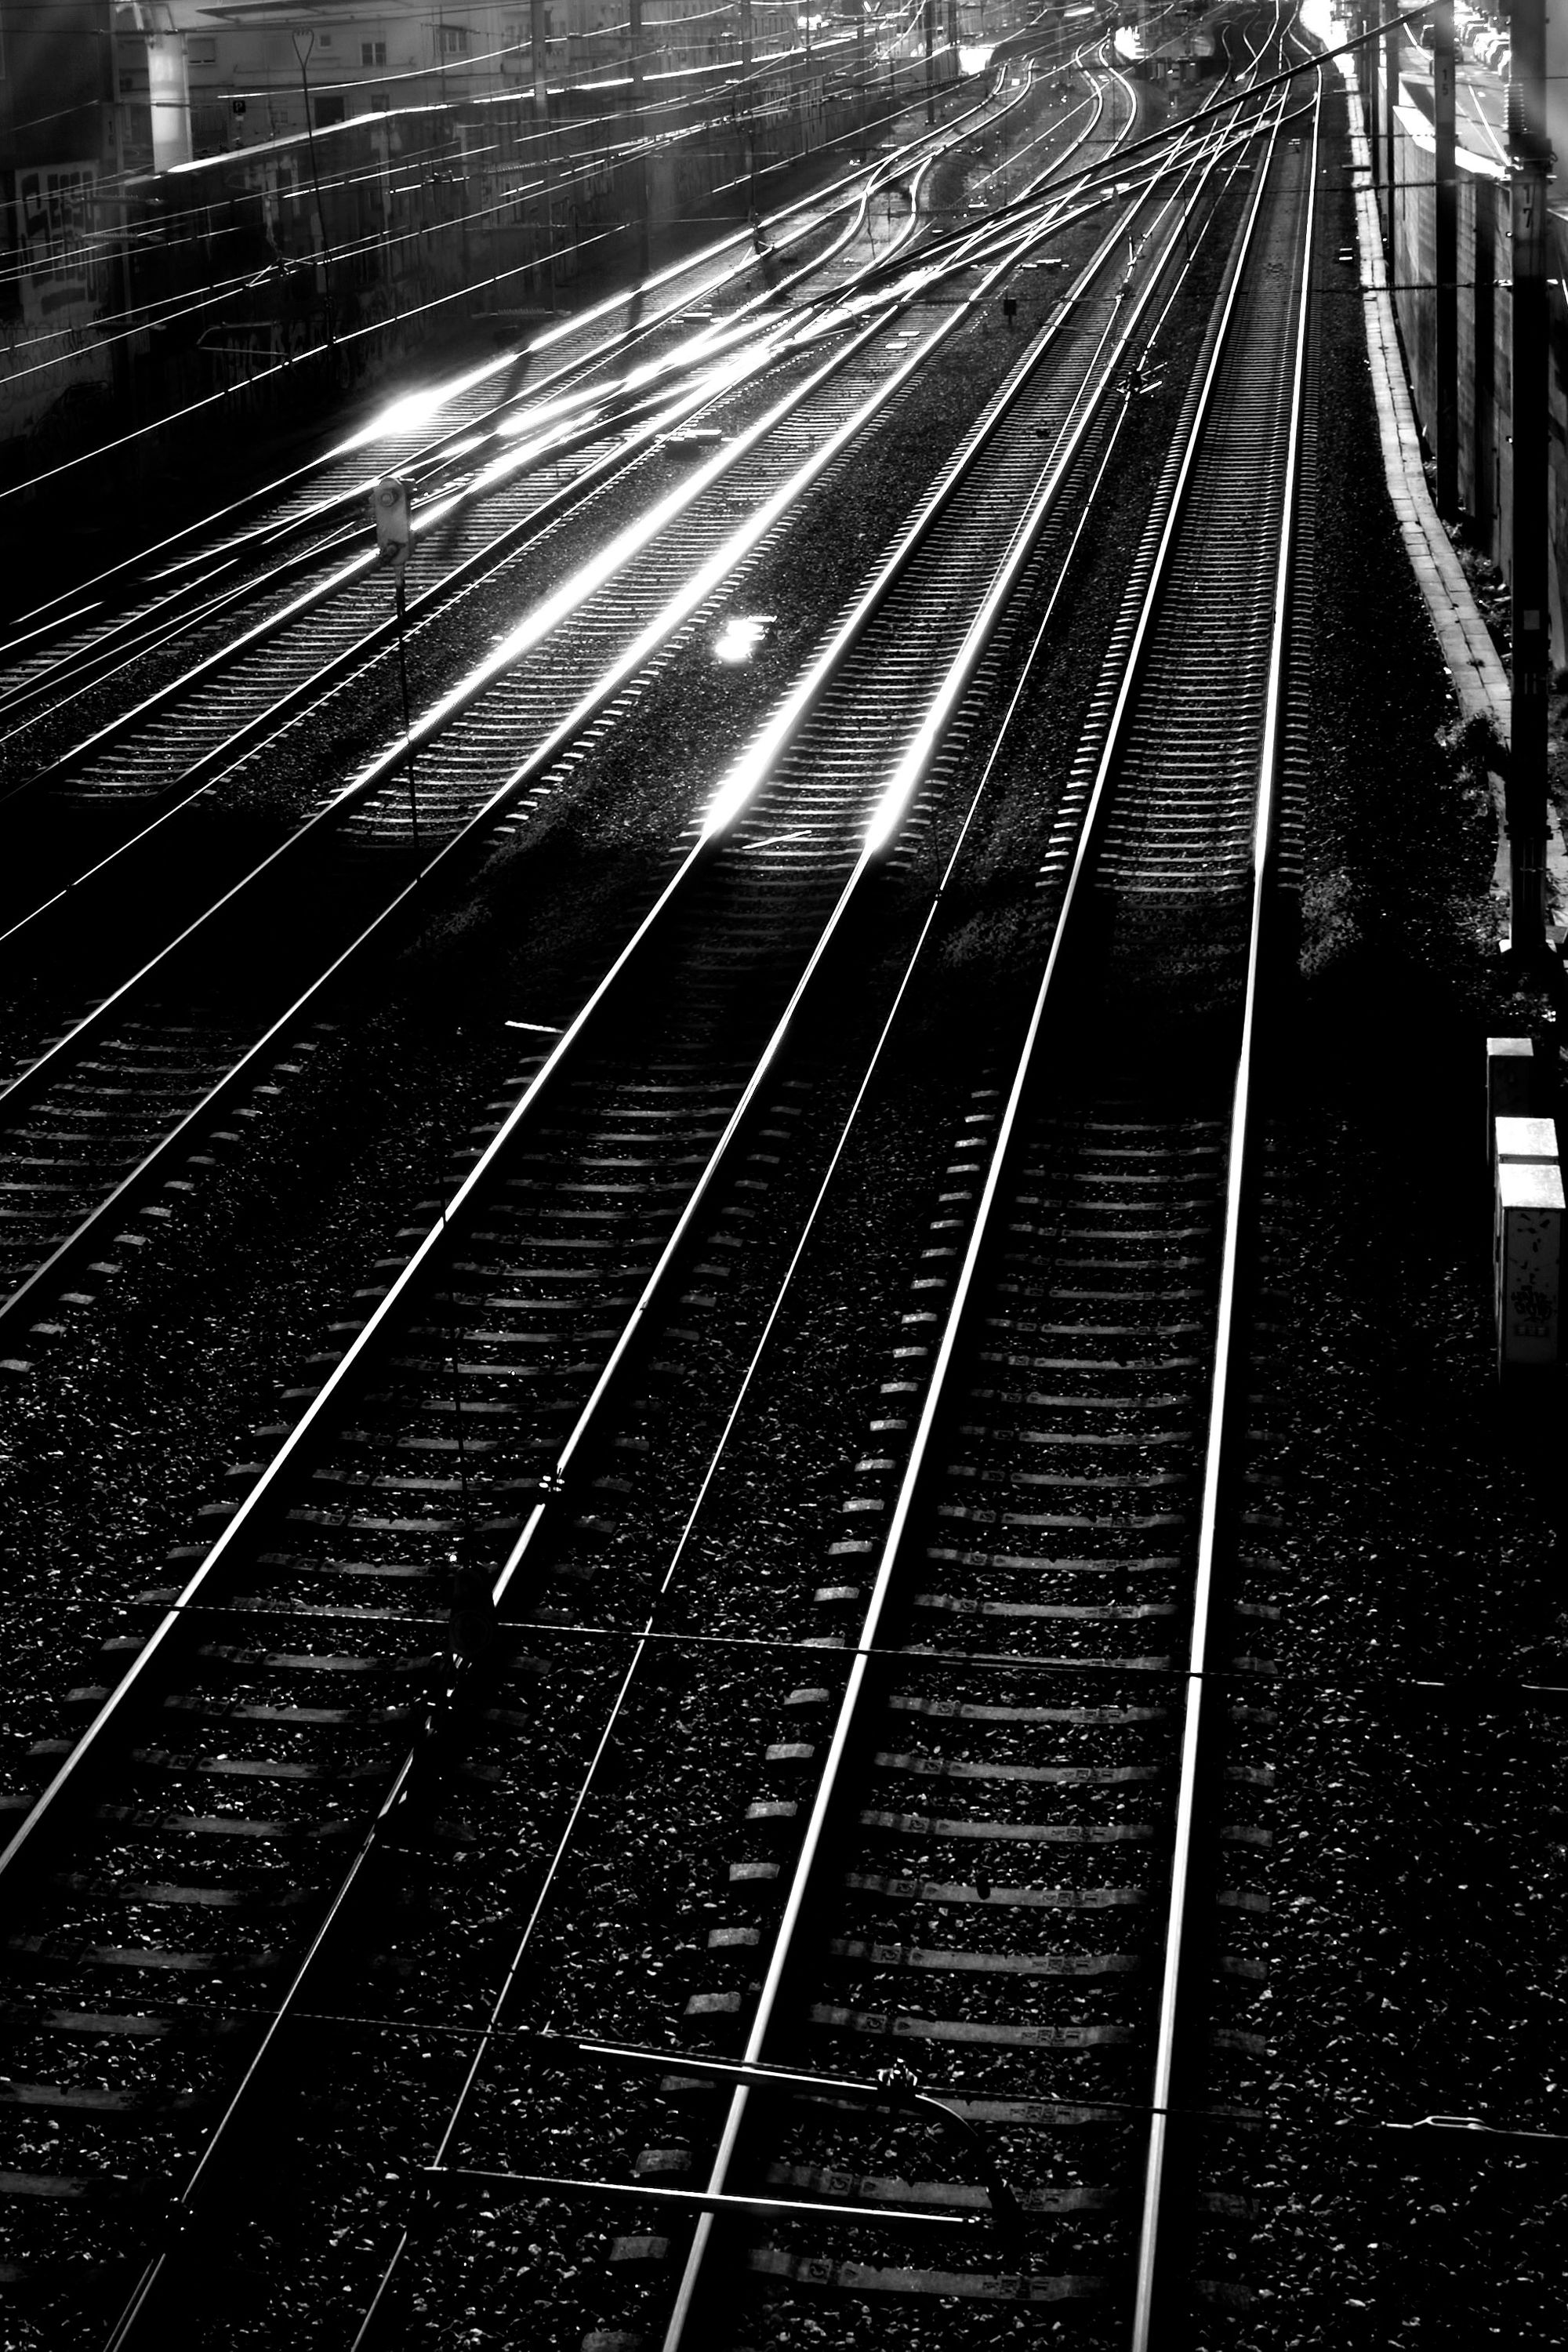 Sunlight on Tracks